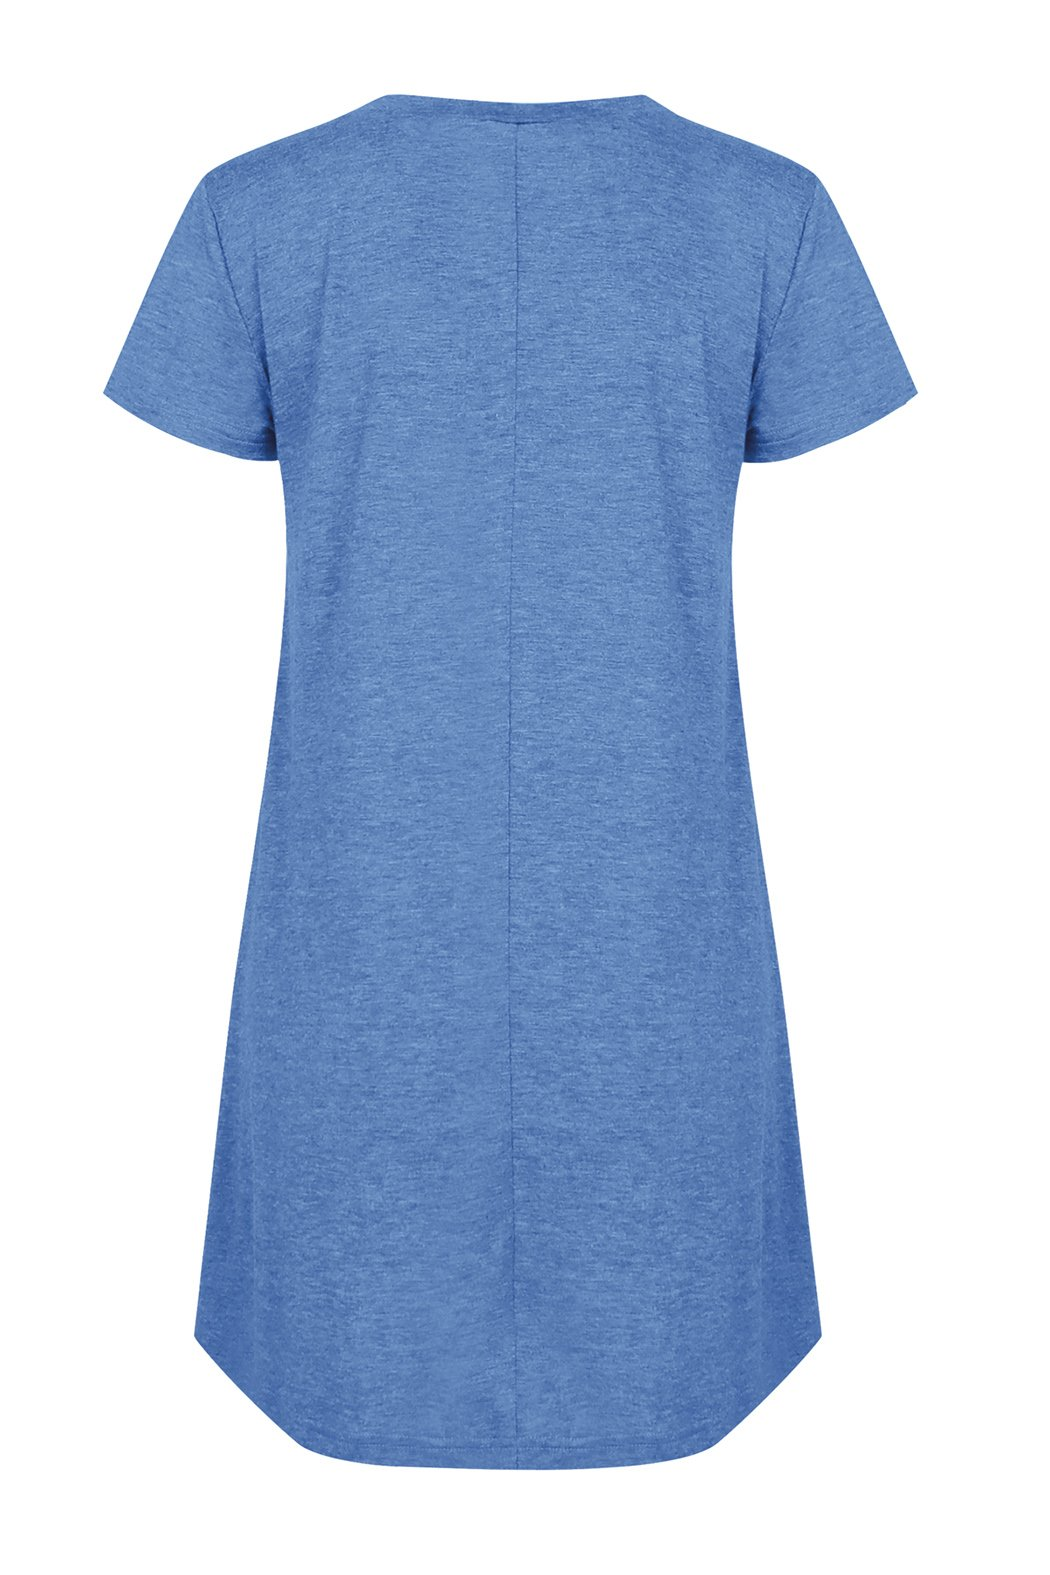 Rdfmy Women\'s Lace Short Sleeve Tops Casual Round Neck Top Blouses Blue XXL